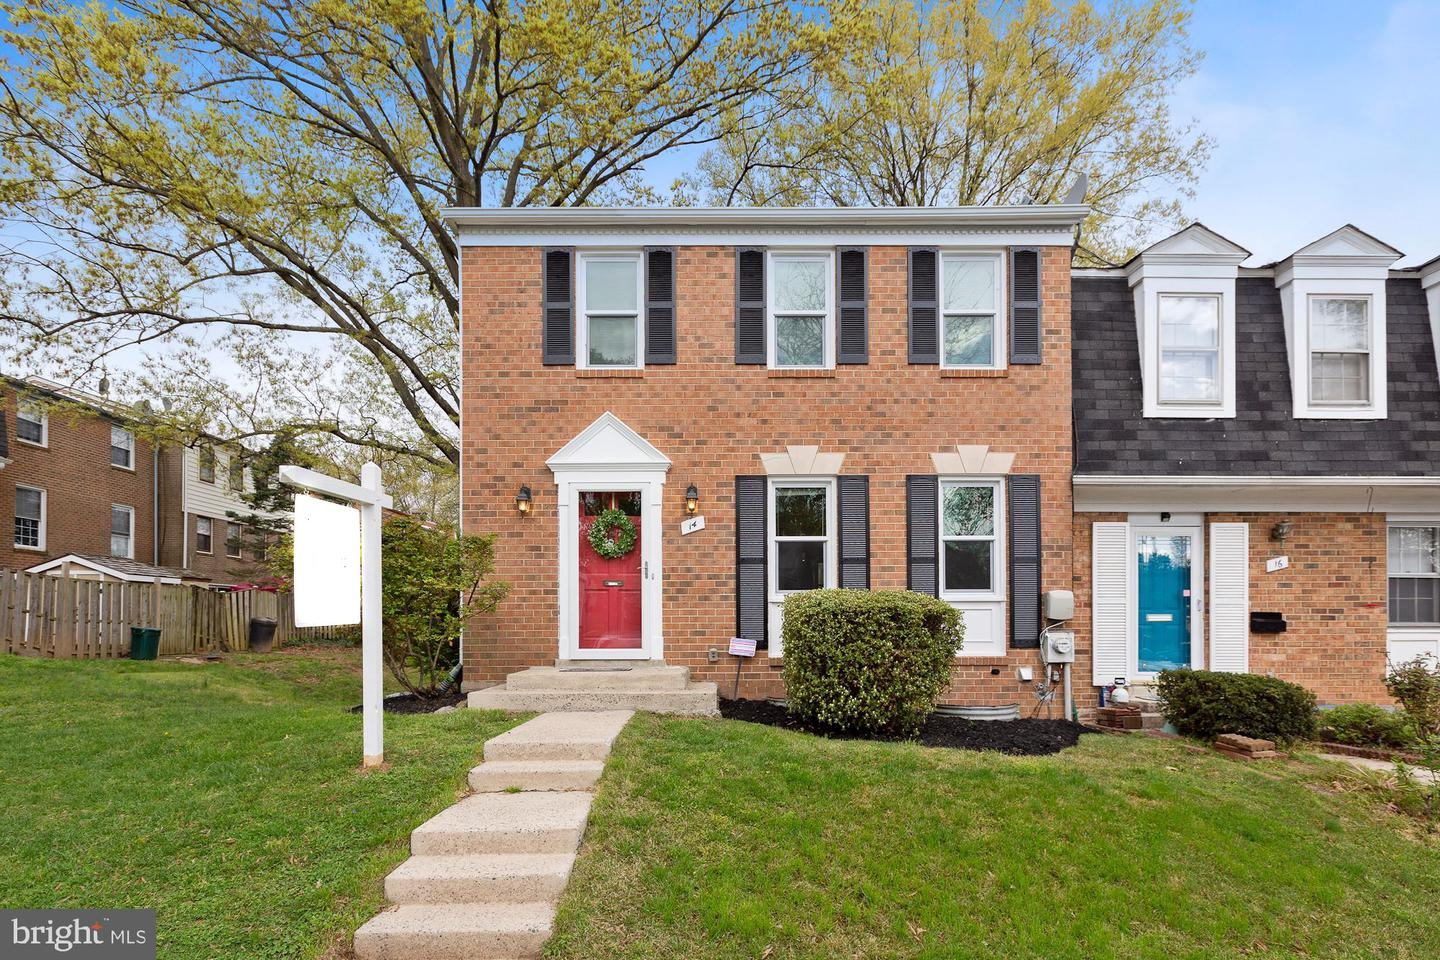 14 RAMSDELL CT, GAITHERSBURG, Maryland 20878, 3 Bedrooms Bedrooms, ,4 BathroomsBathrooms,Townhouse,For Sale,14 RAMSDELL CT,MDMC750226